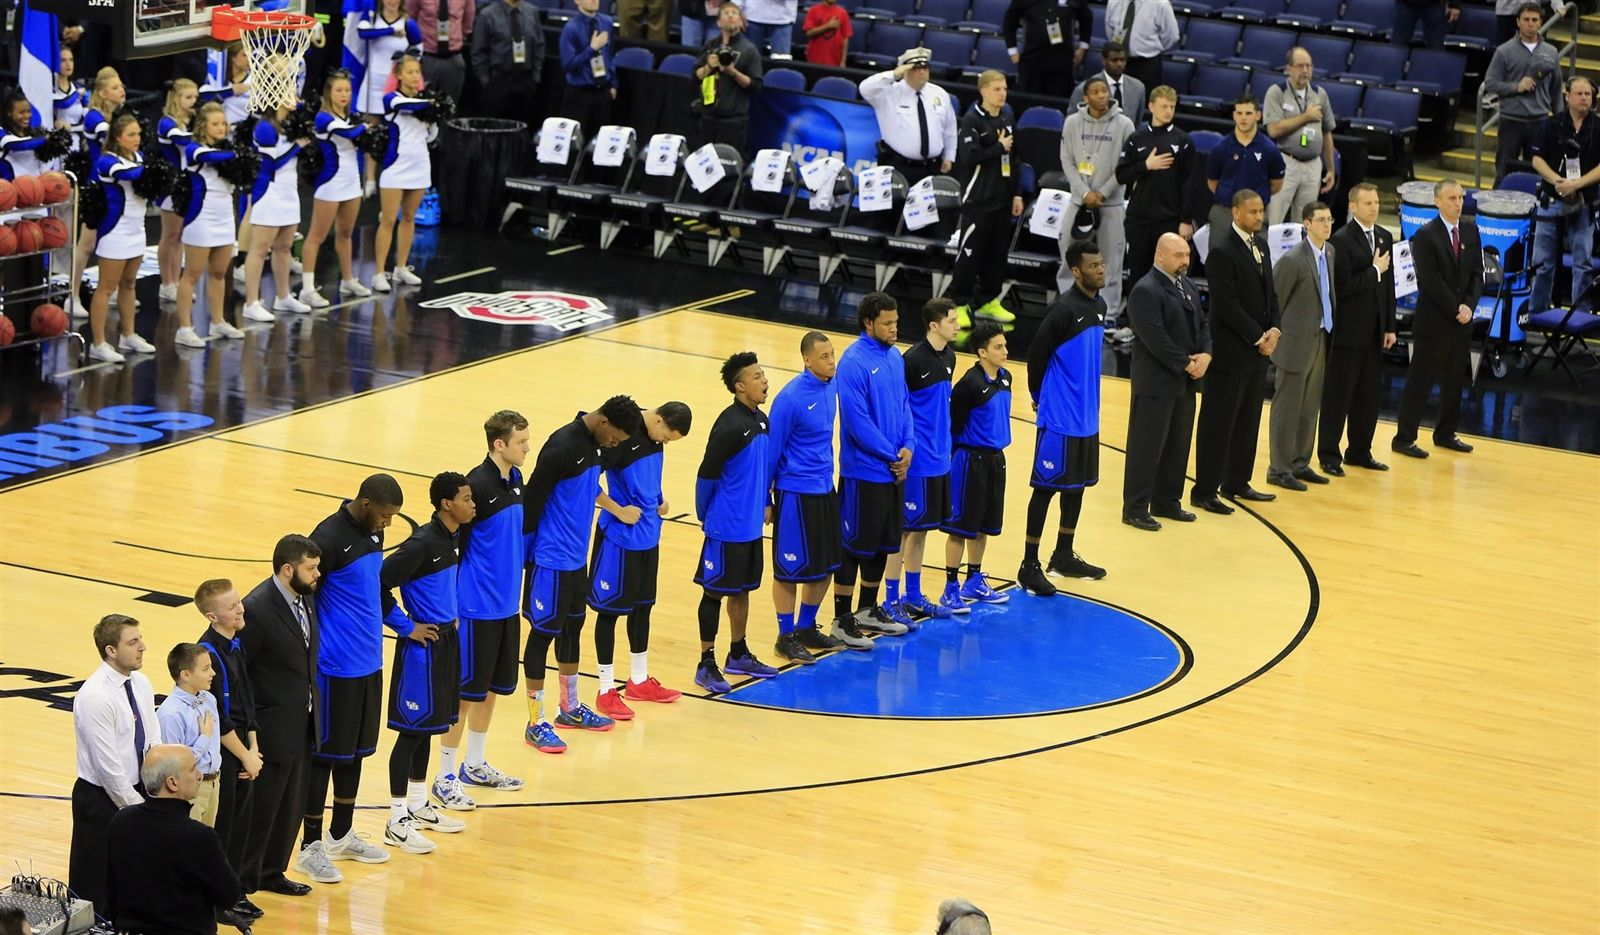 University at Buffalo players and coaches stand for the national anthem before the game.